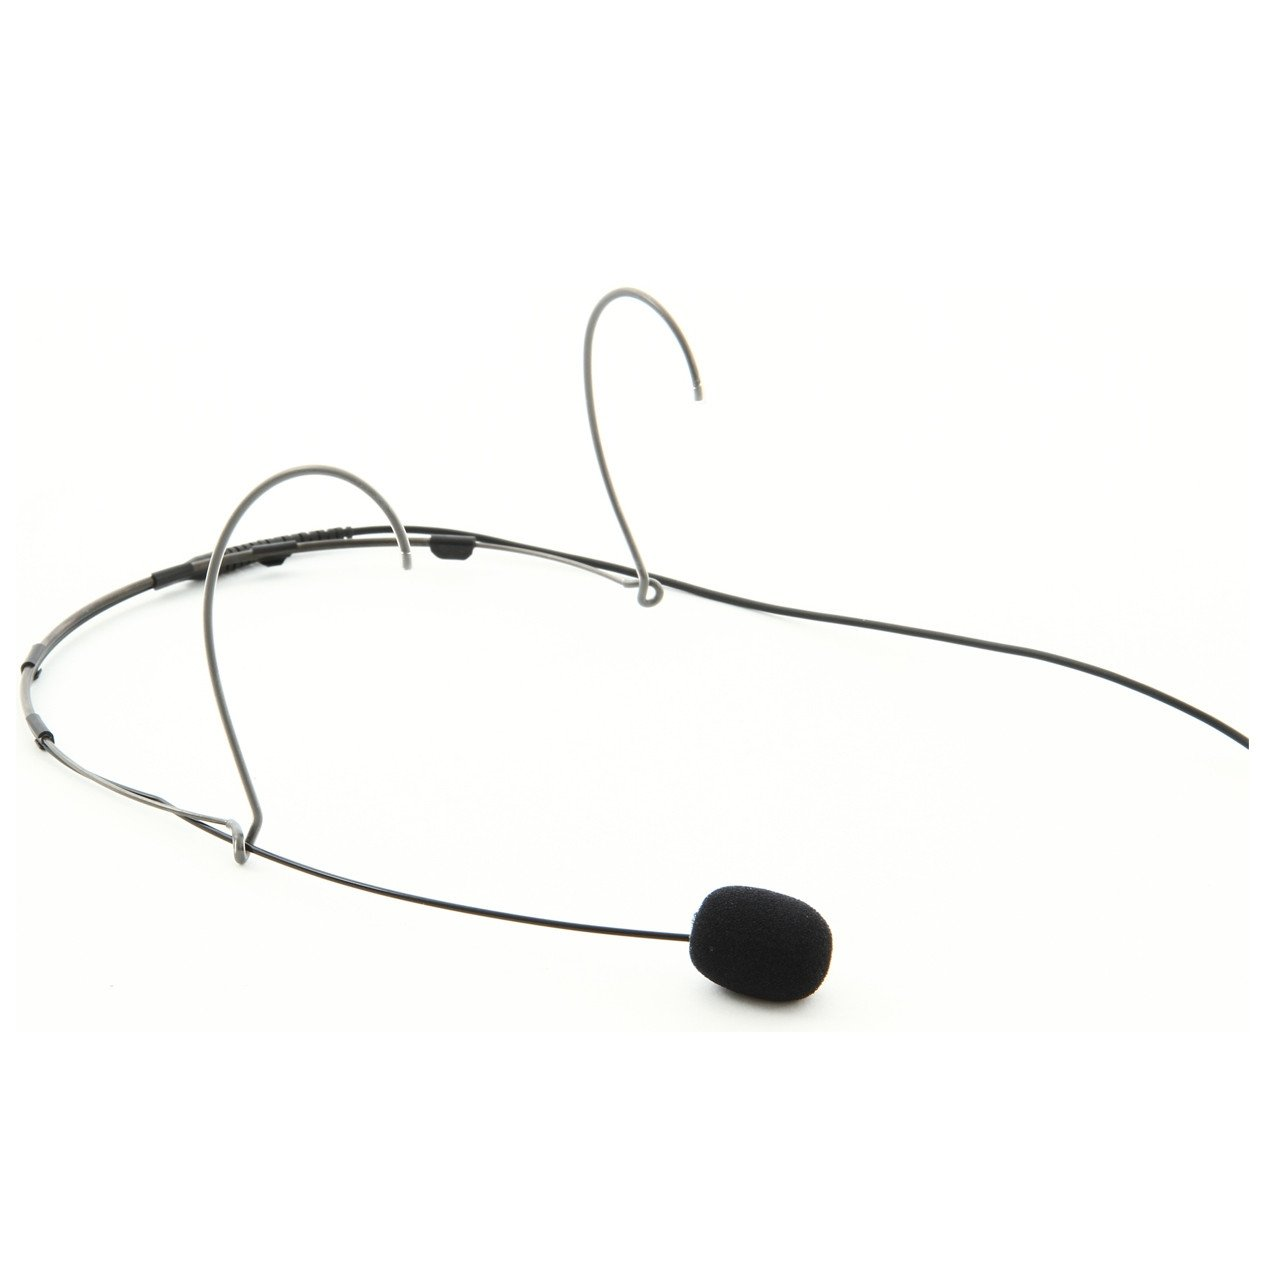 DPA d:fine™ 4088 Directional Headset Microphone